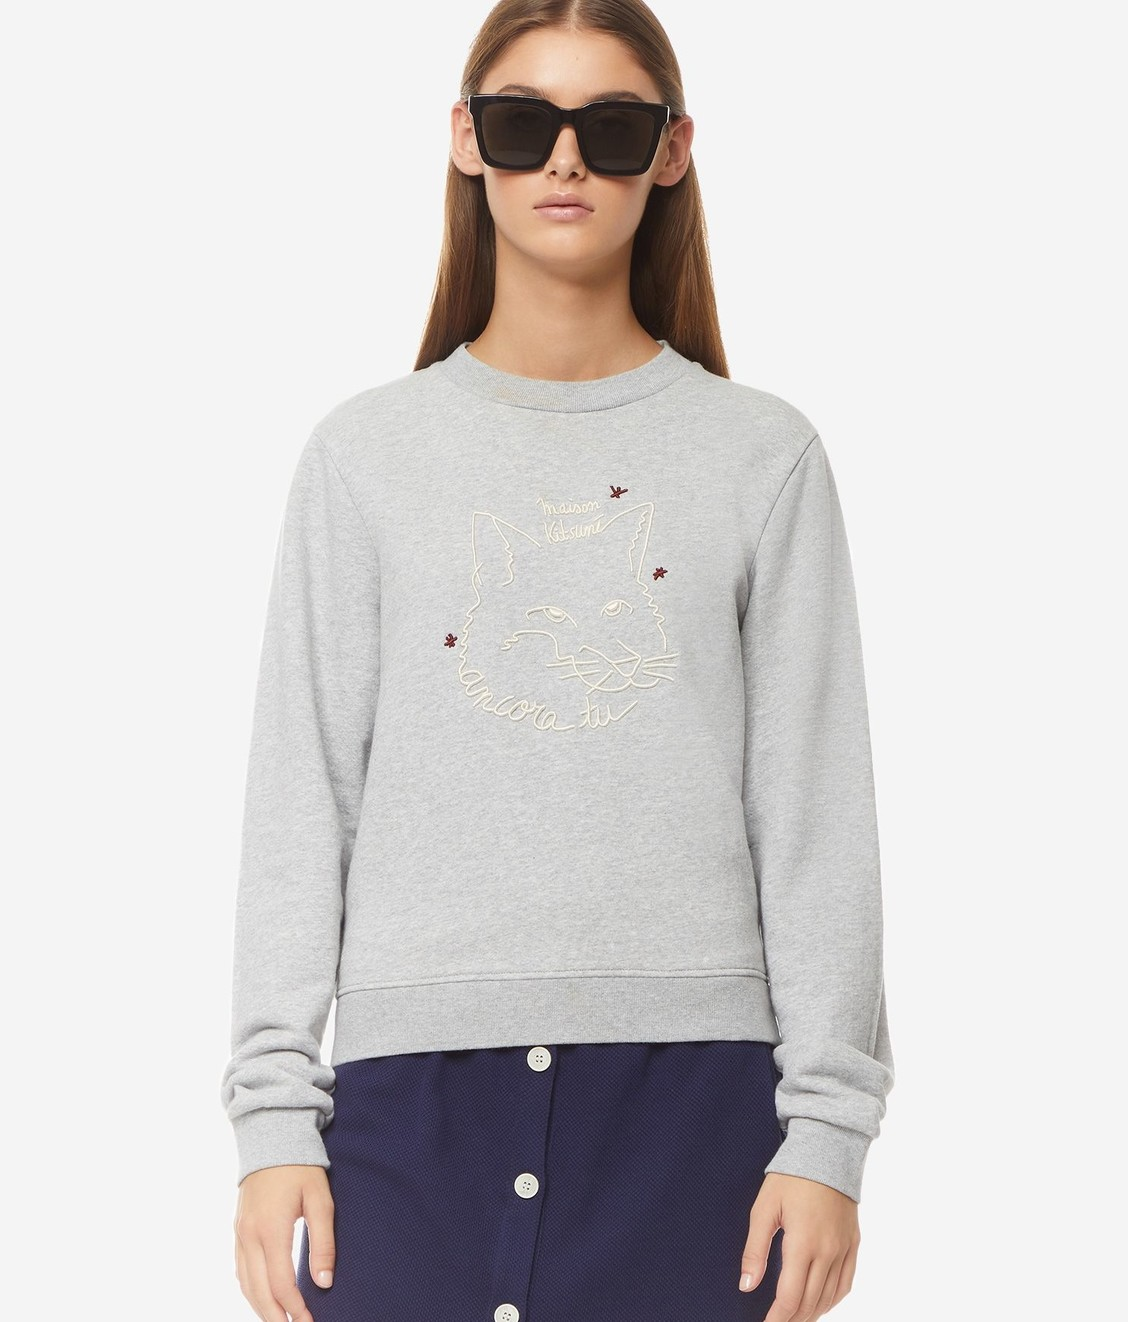 Maison Kitsune Maison Kitsune Sweat Fox Drawing Grey